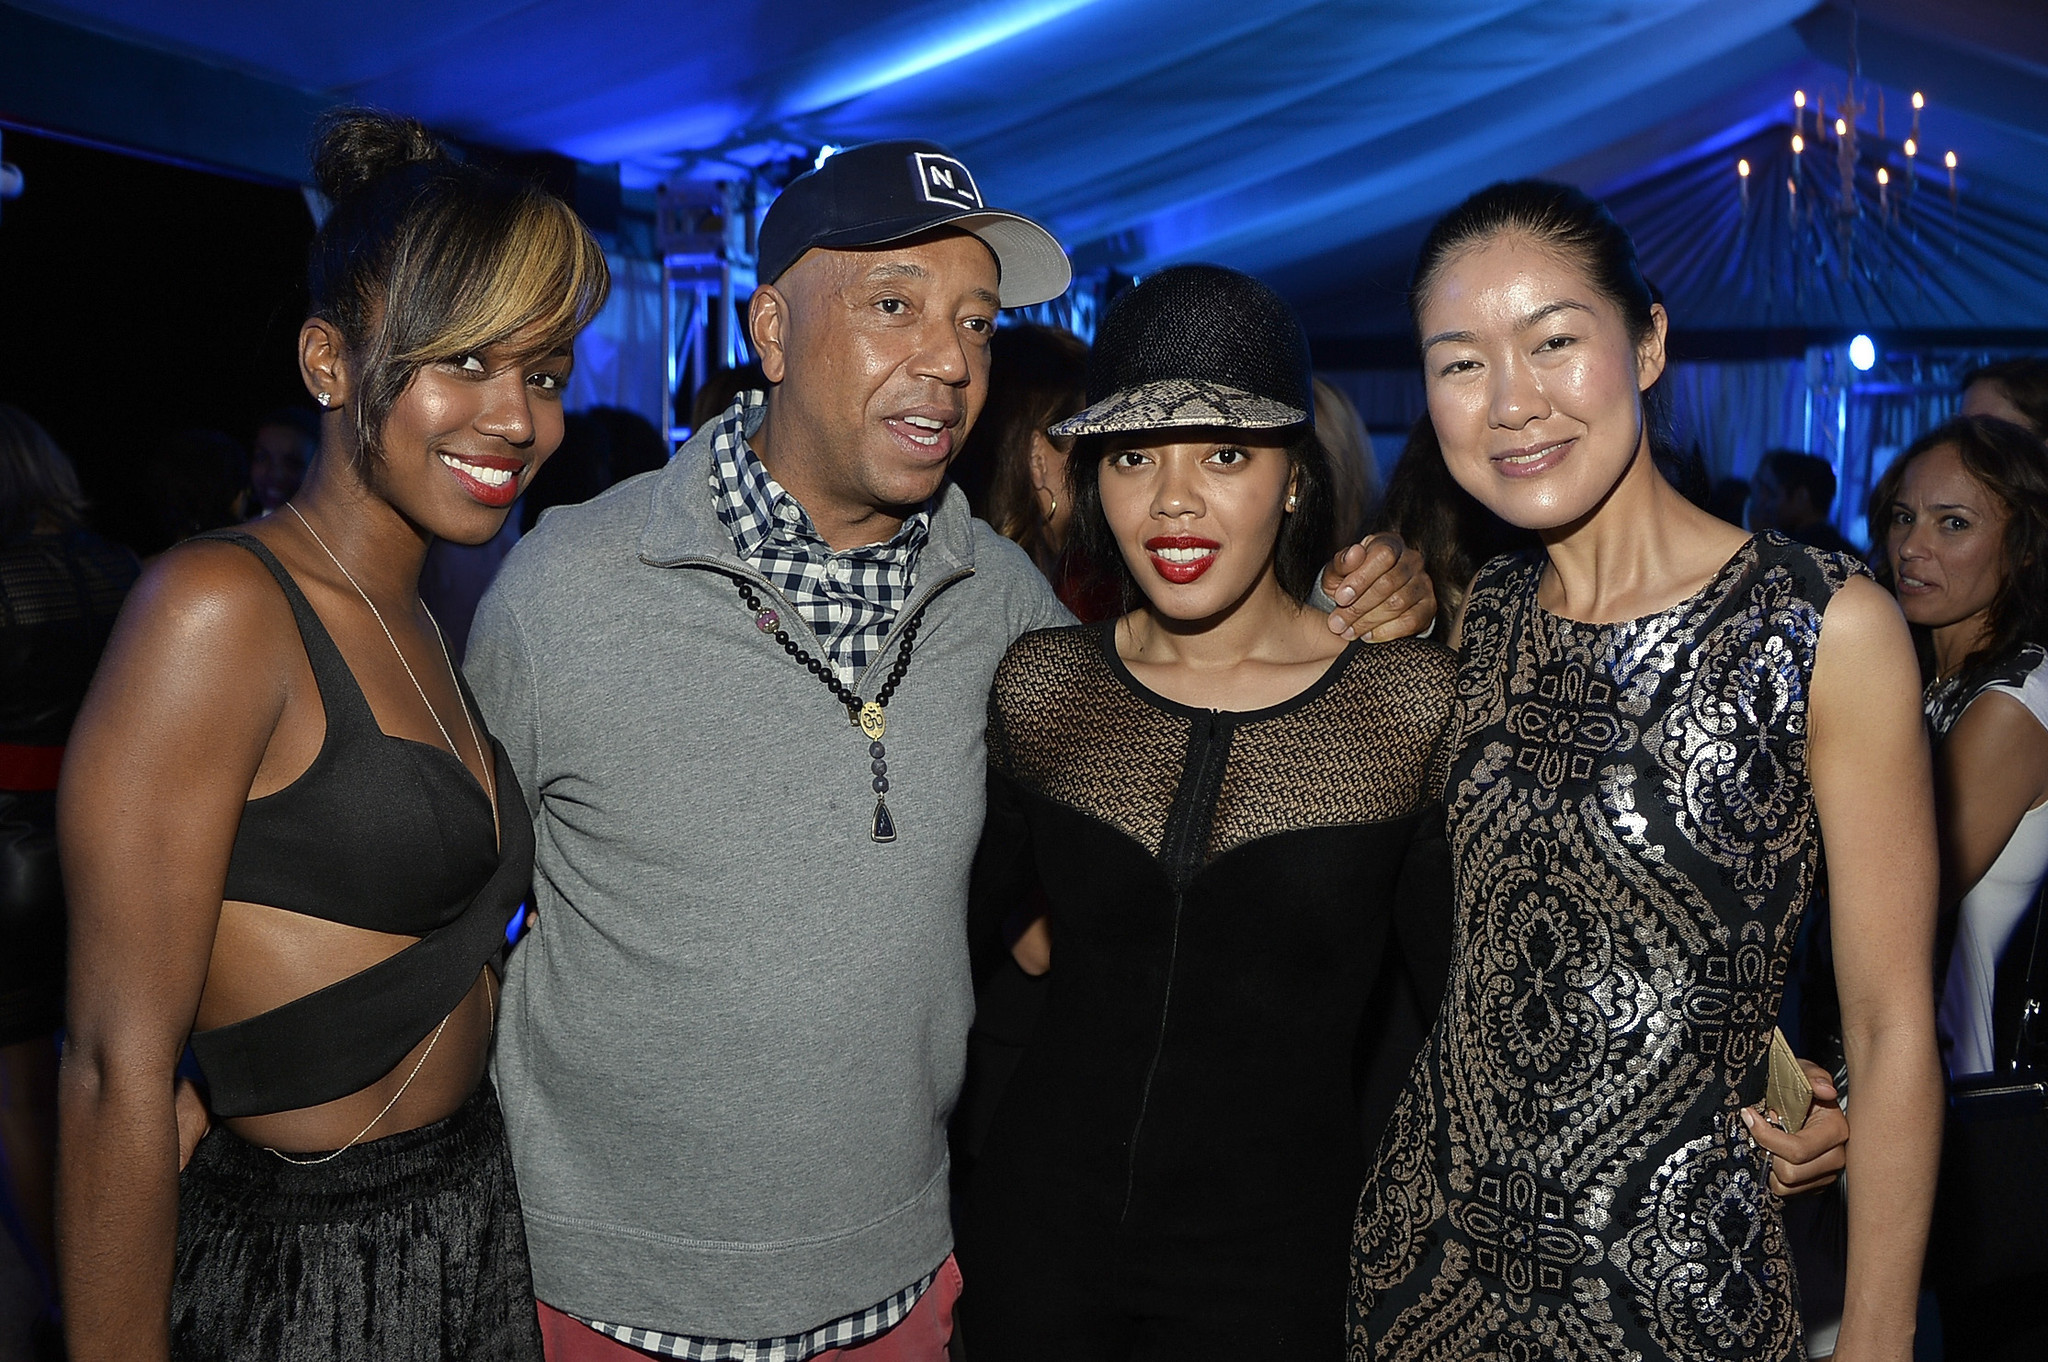 PHOTOS: Artists, celebs at Art Basel - Bombay Sapphire Artisan Series Finale Dinner Hosted By Russell Simmons And Tom Colicchio At Soho Beach House In Miami